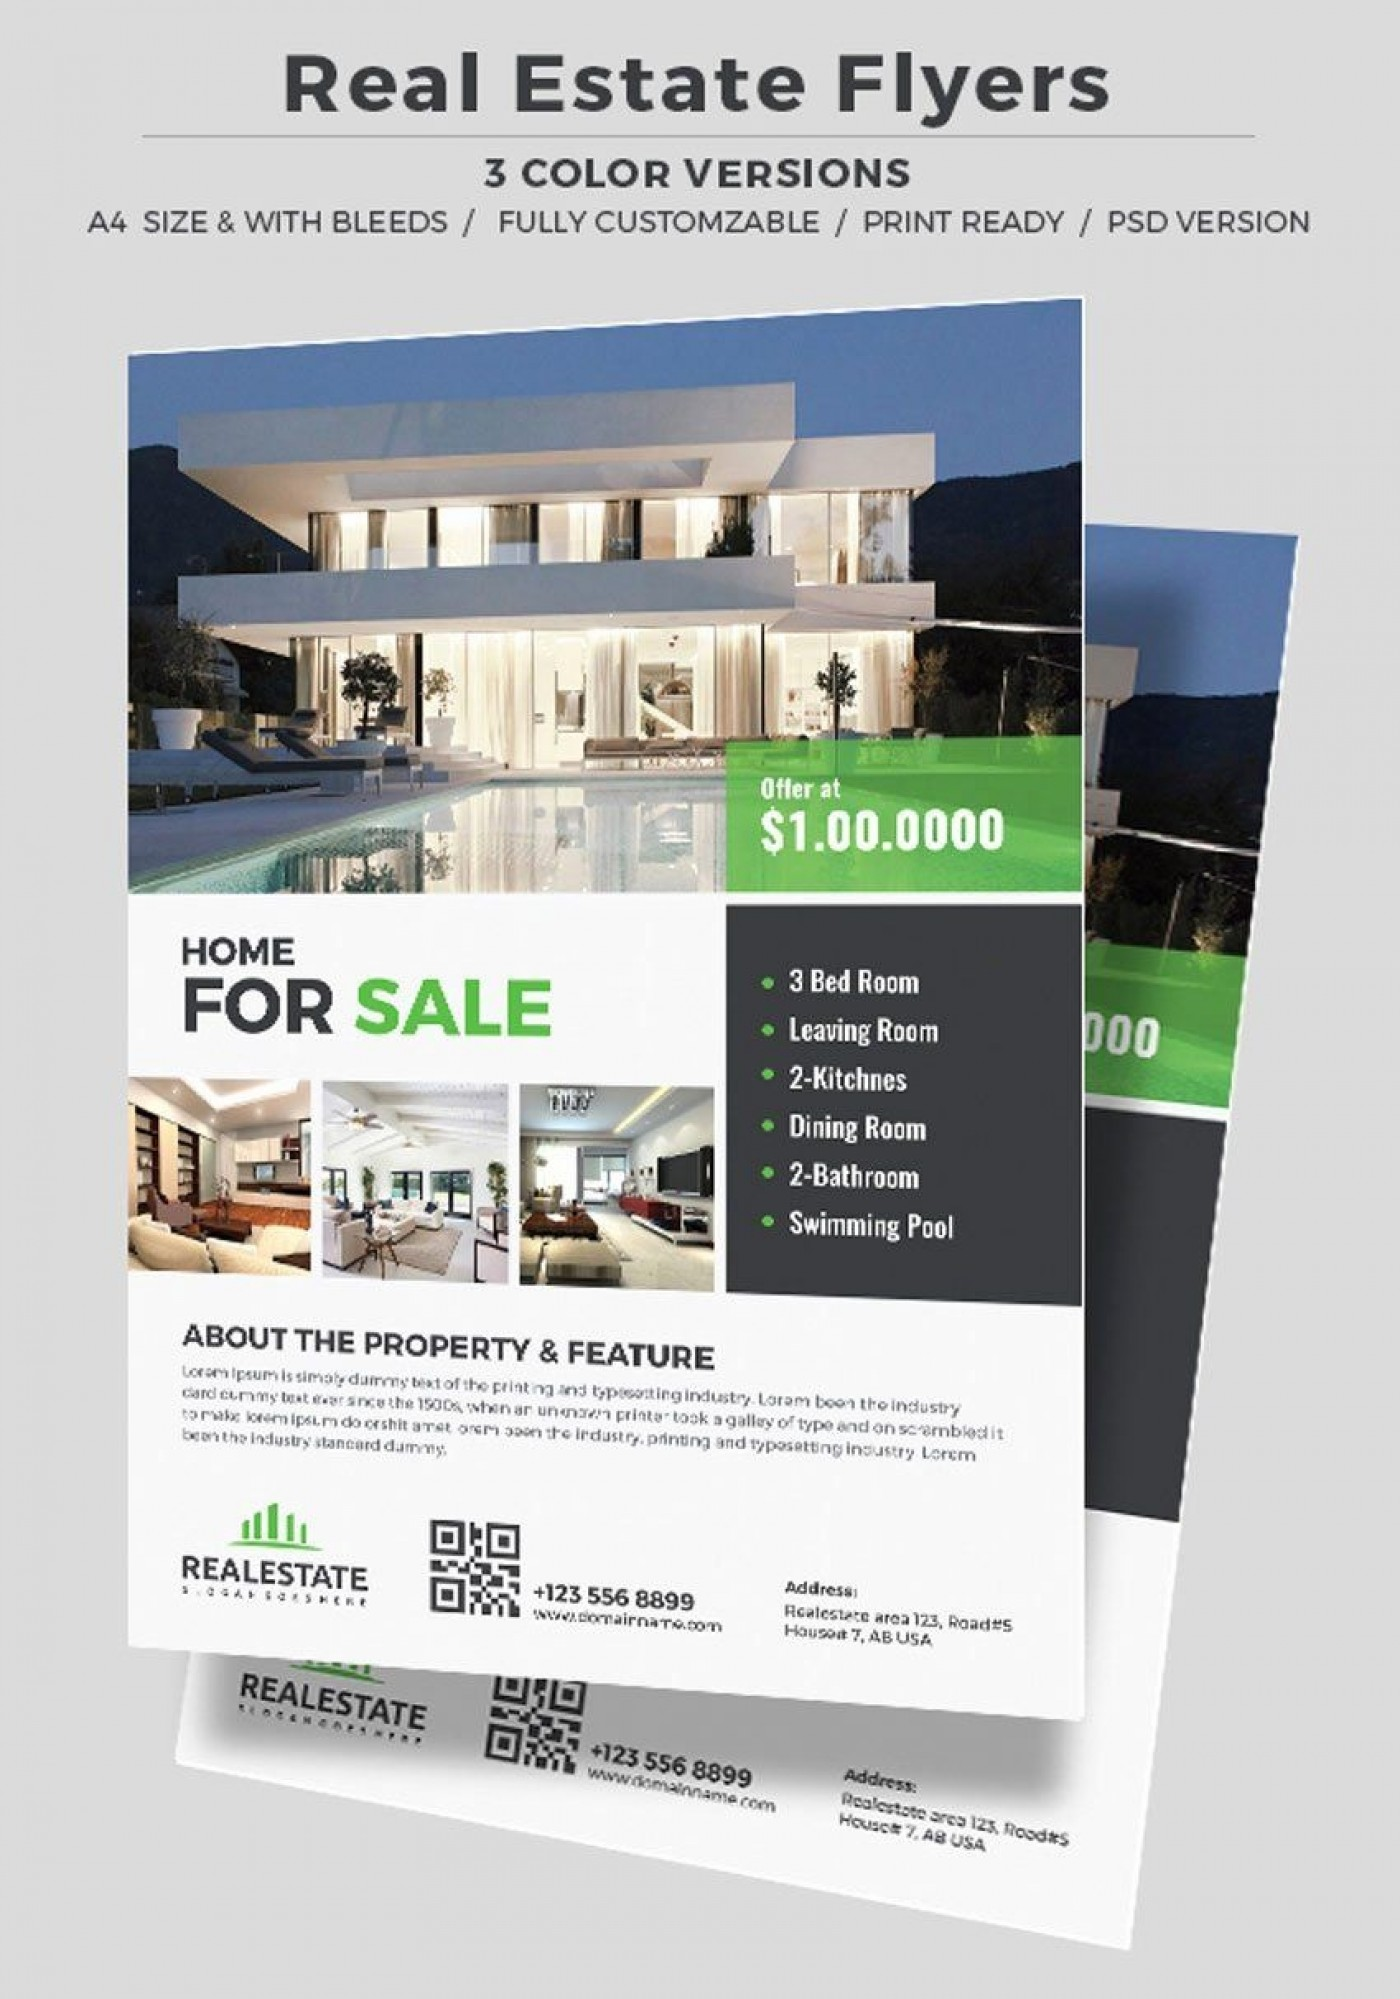 002 Unforgettable Real Estate Advertising Template Photo  Newspaper Ad Instagram Craigslist1400